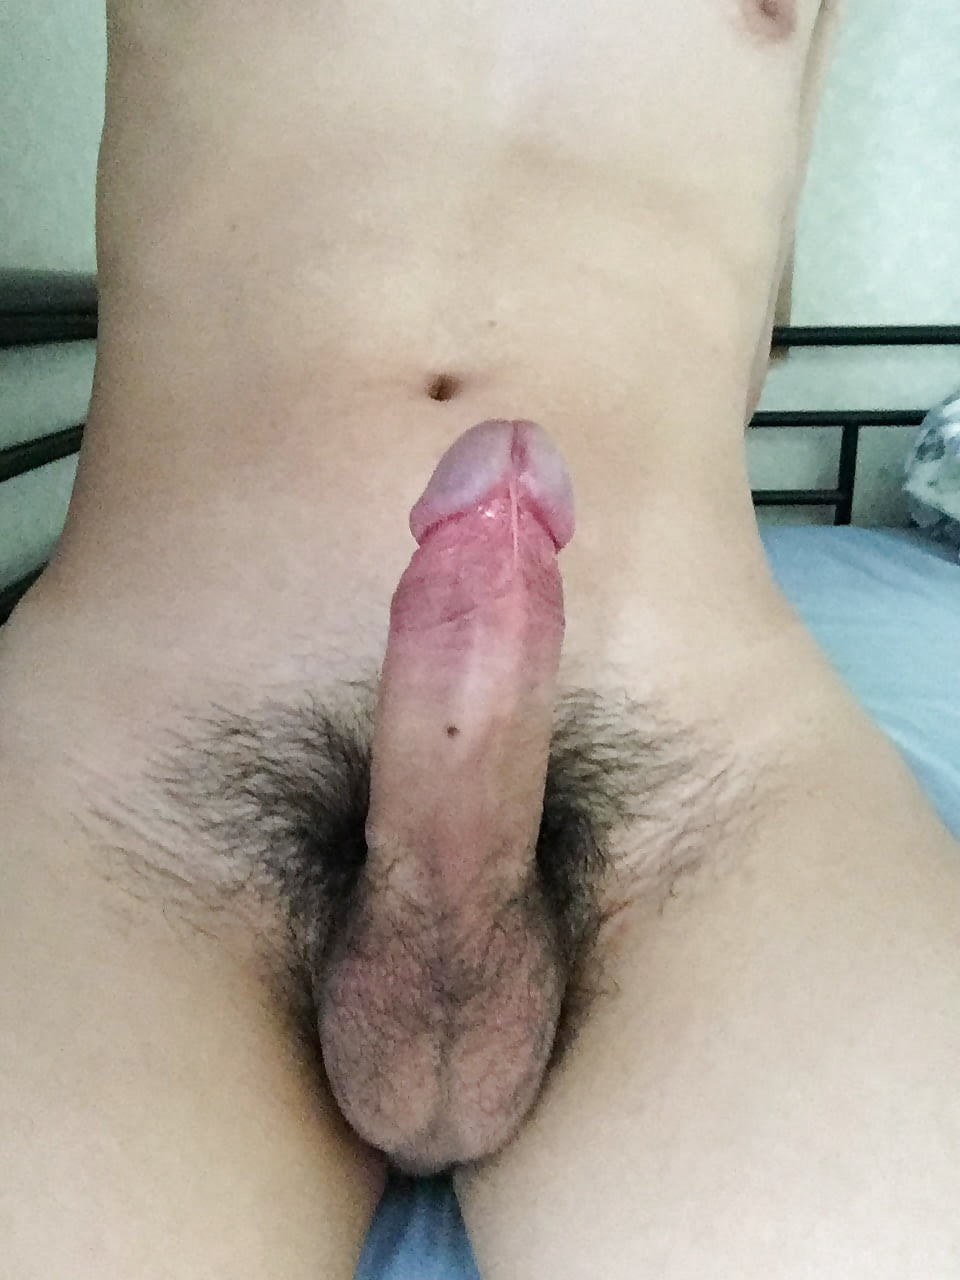 College boys showing their penis and guys naked together gay